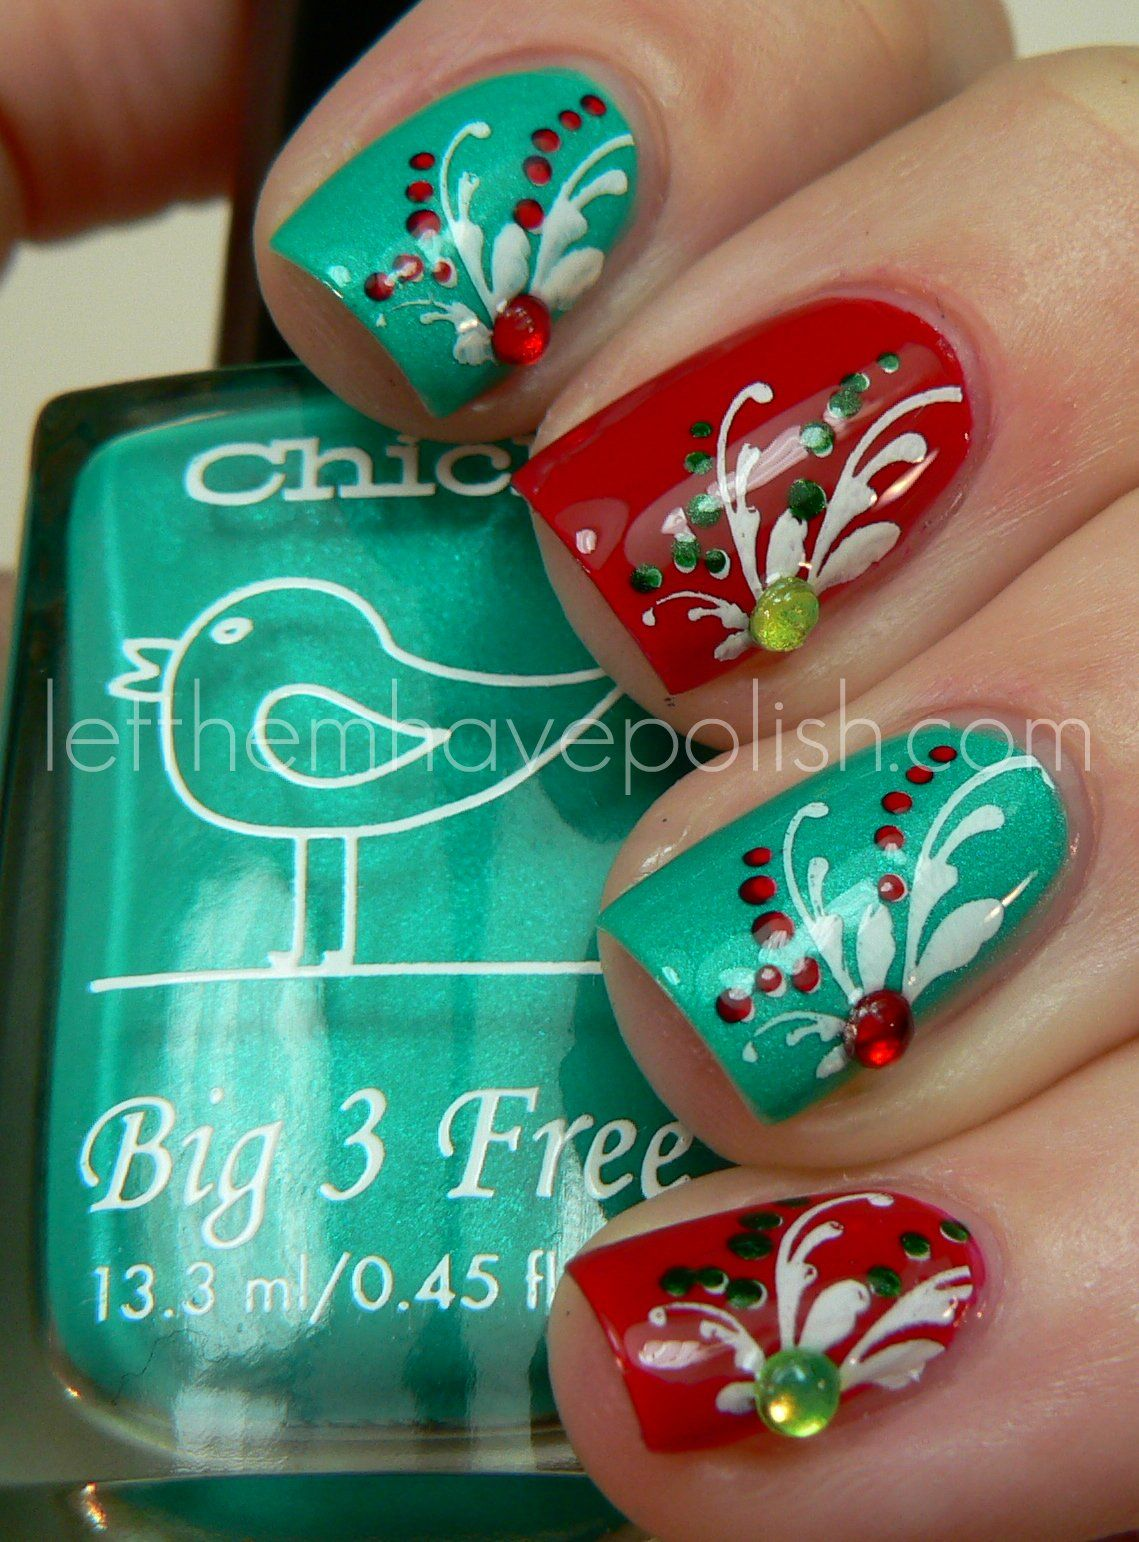 Let them have Polish!: Holiday Skittles with Chick Nail Polish!